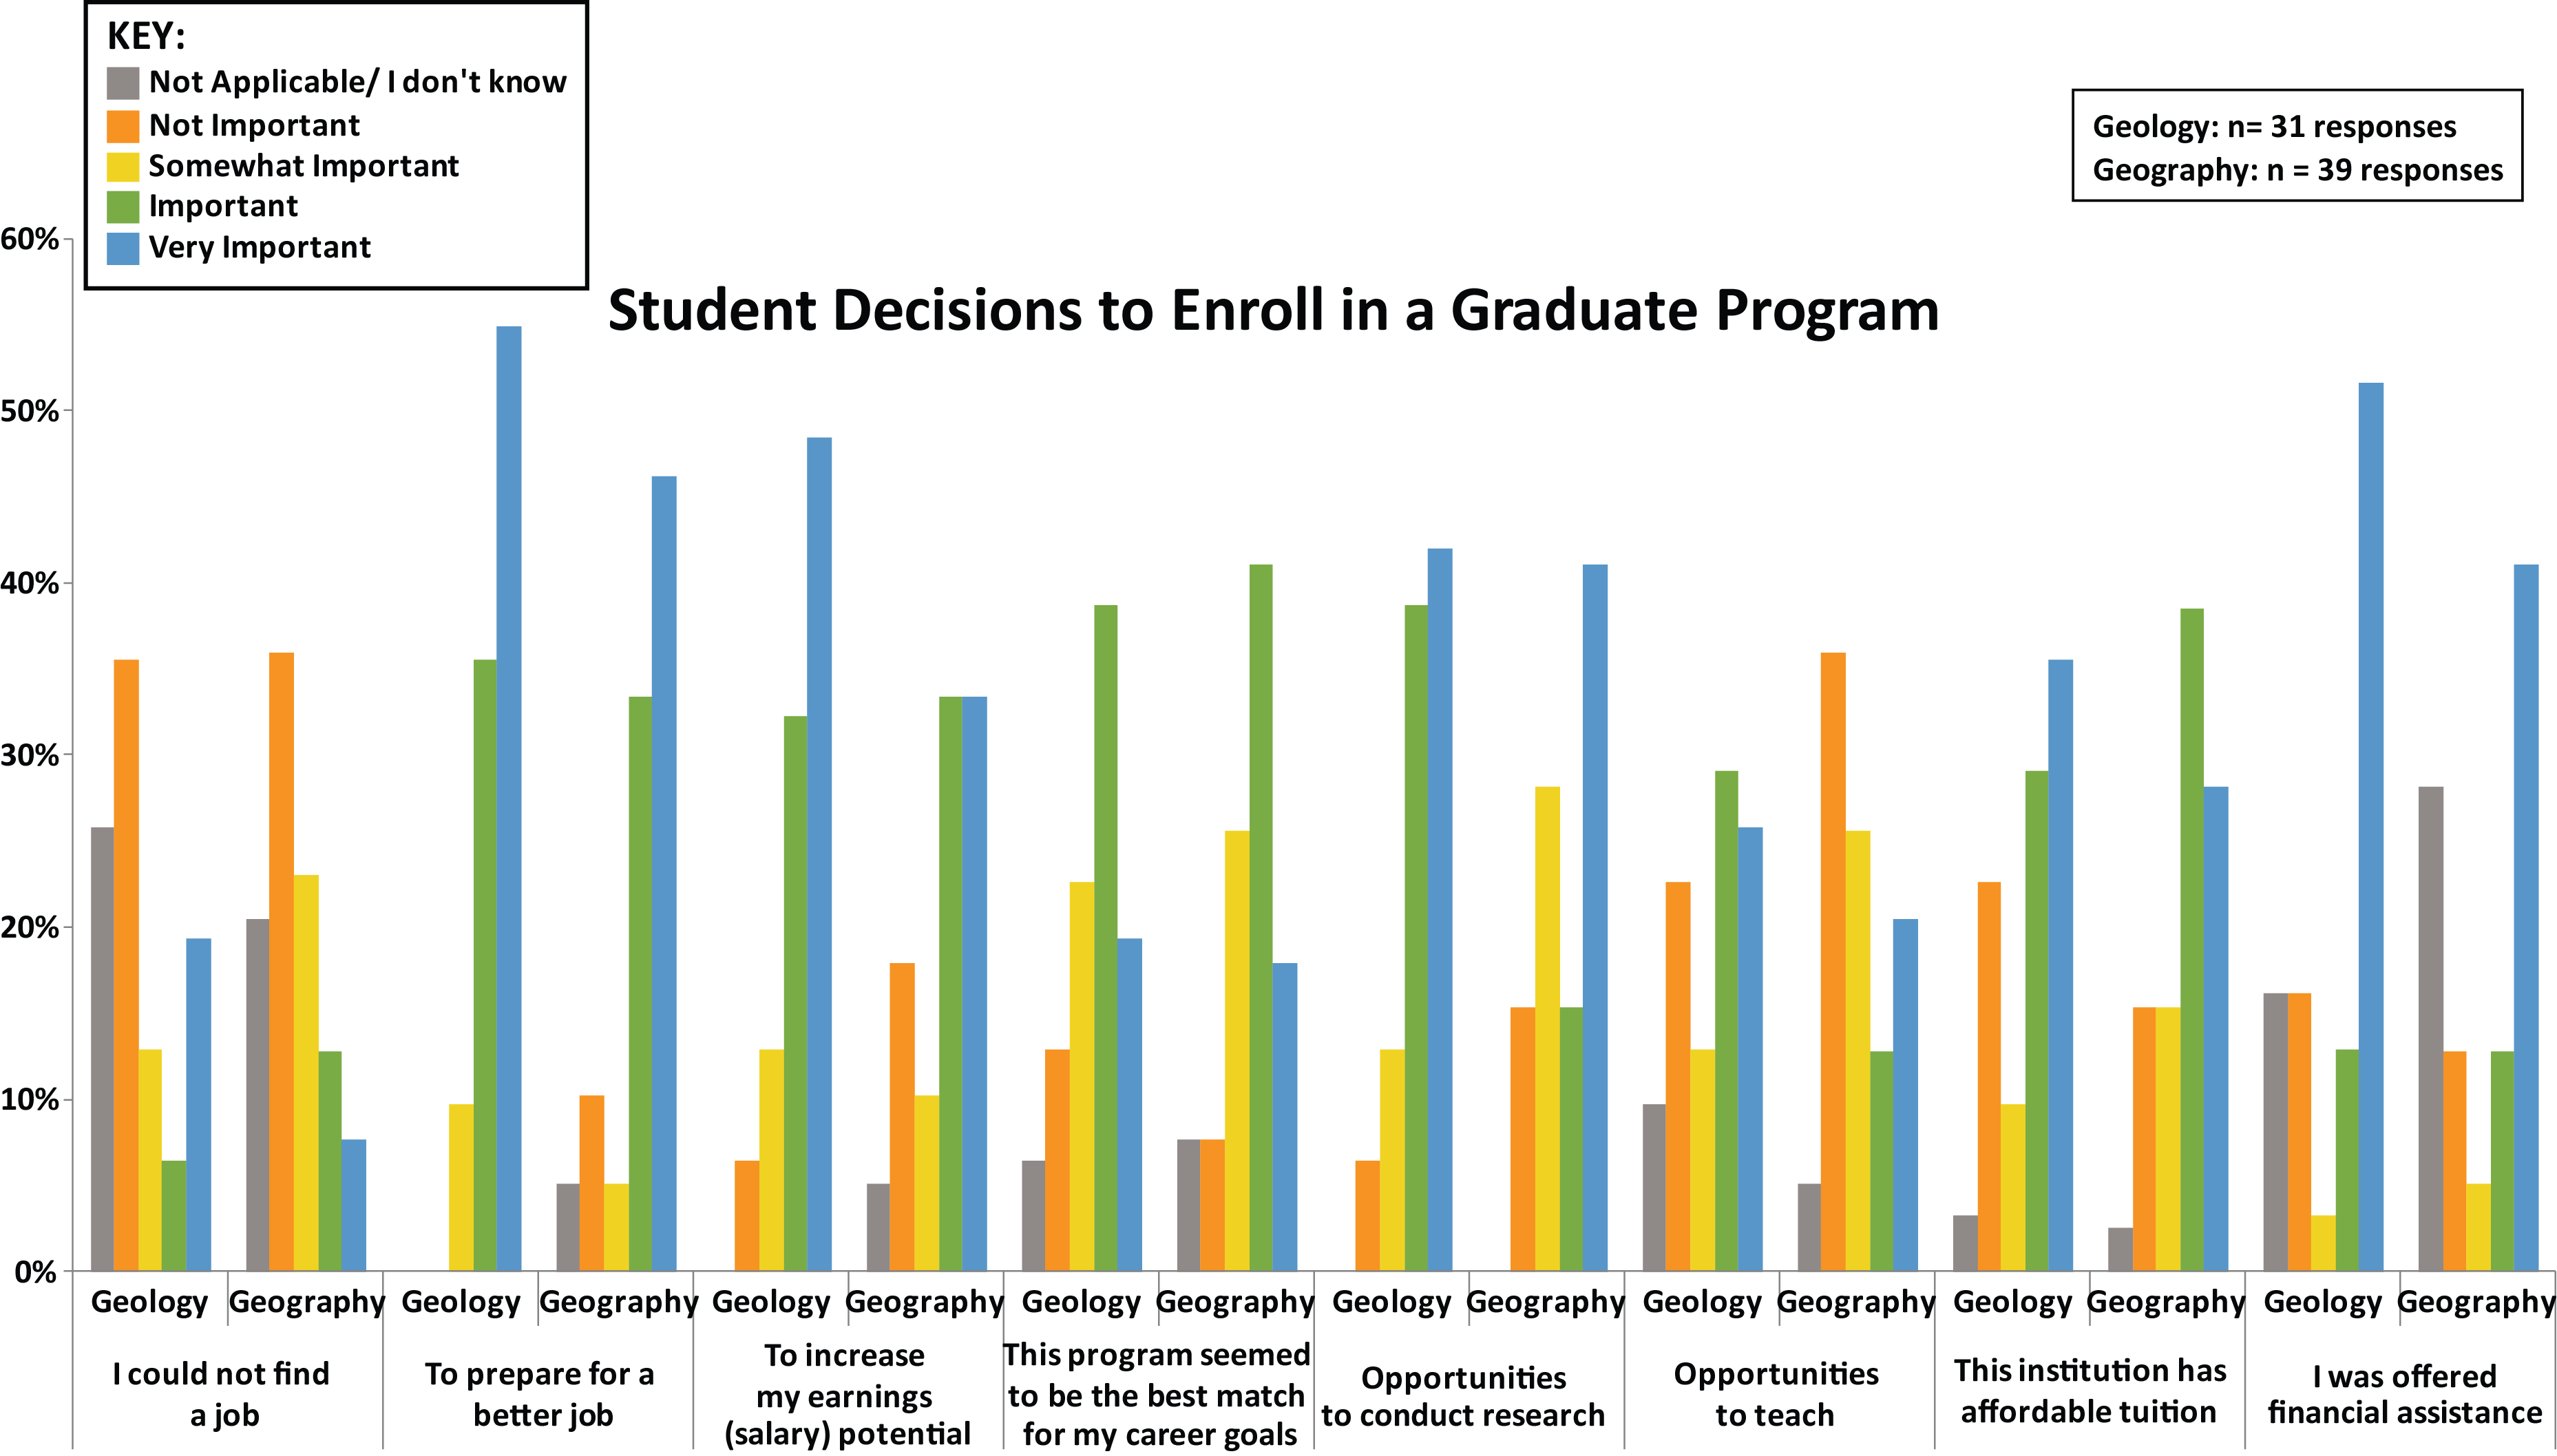 Student Decisions to Enroll in a Graduate Program